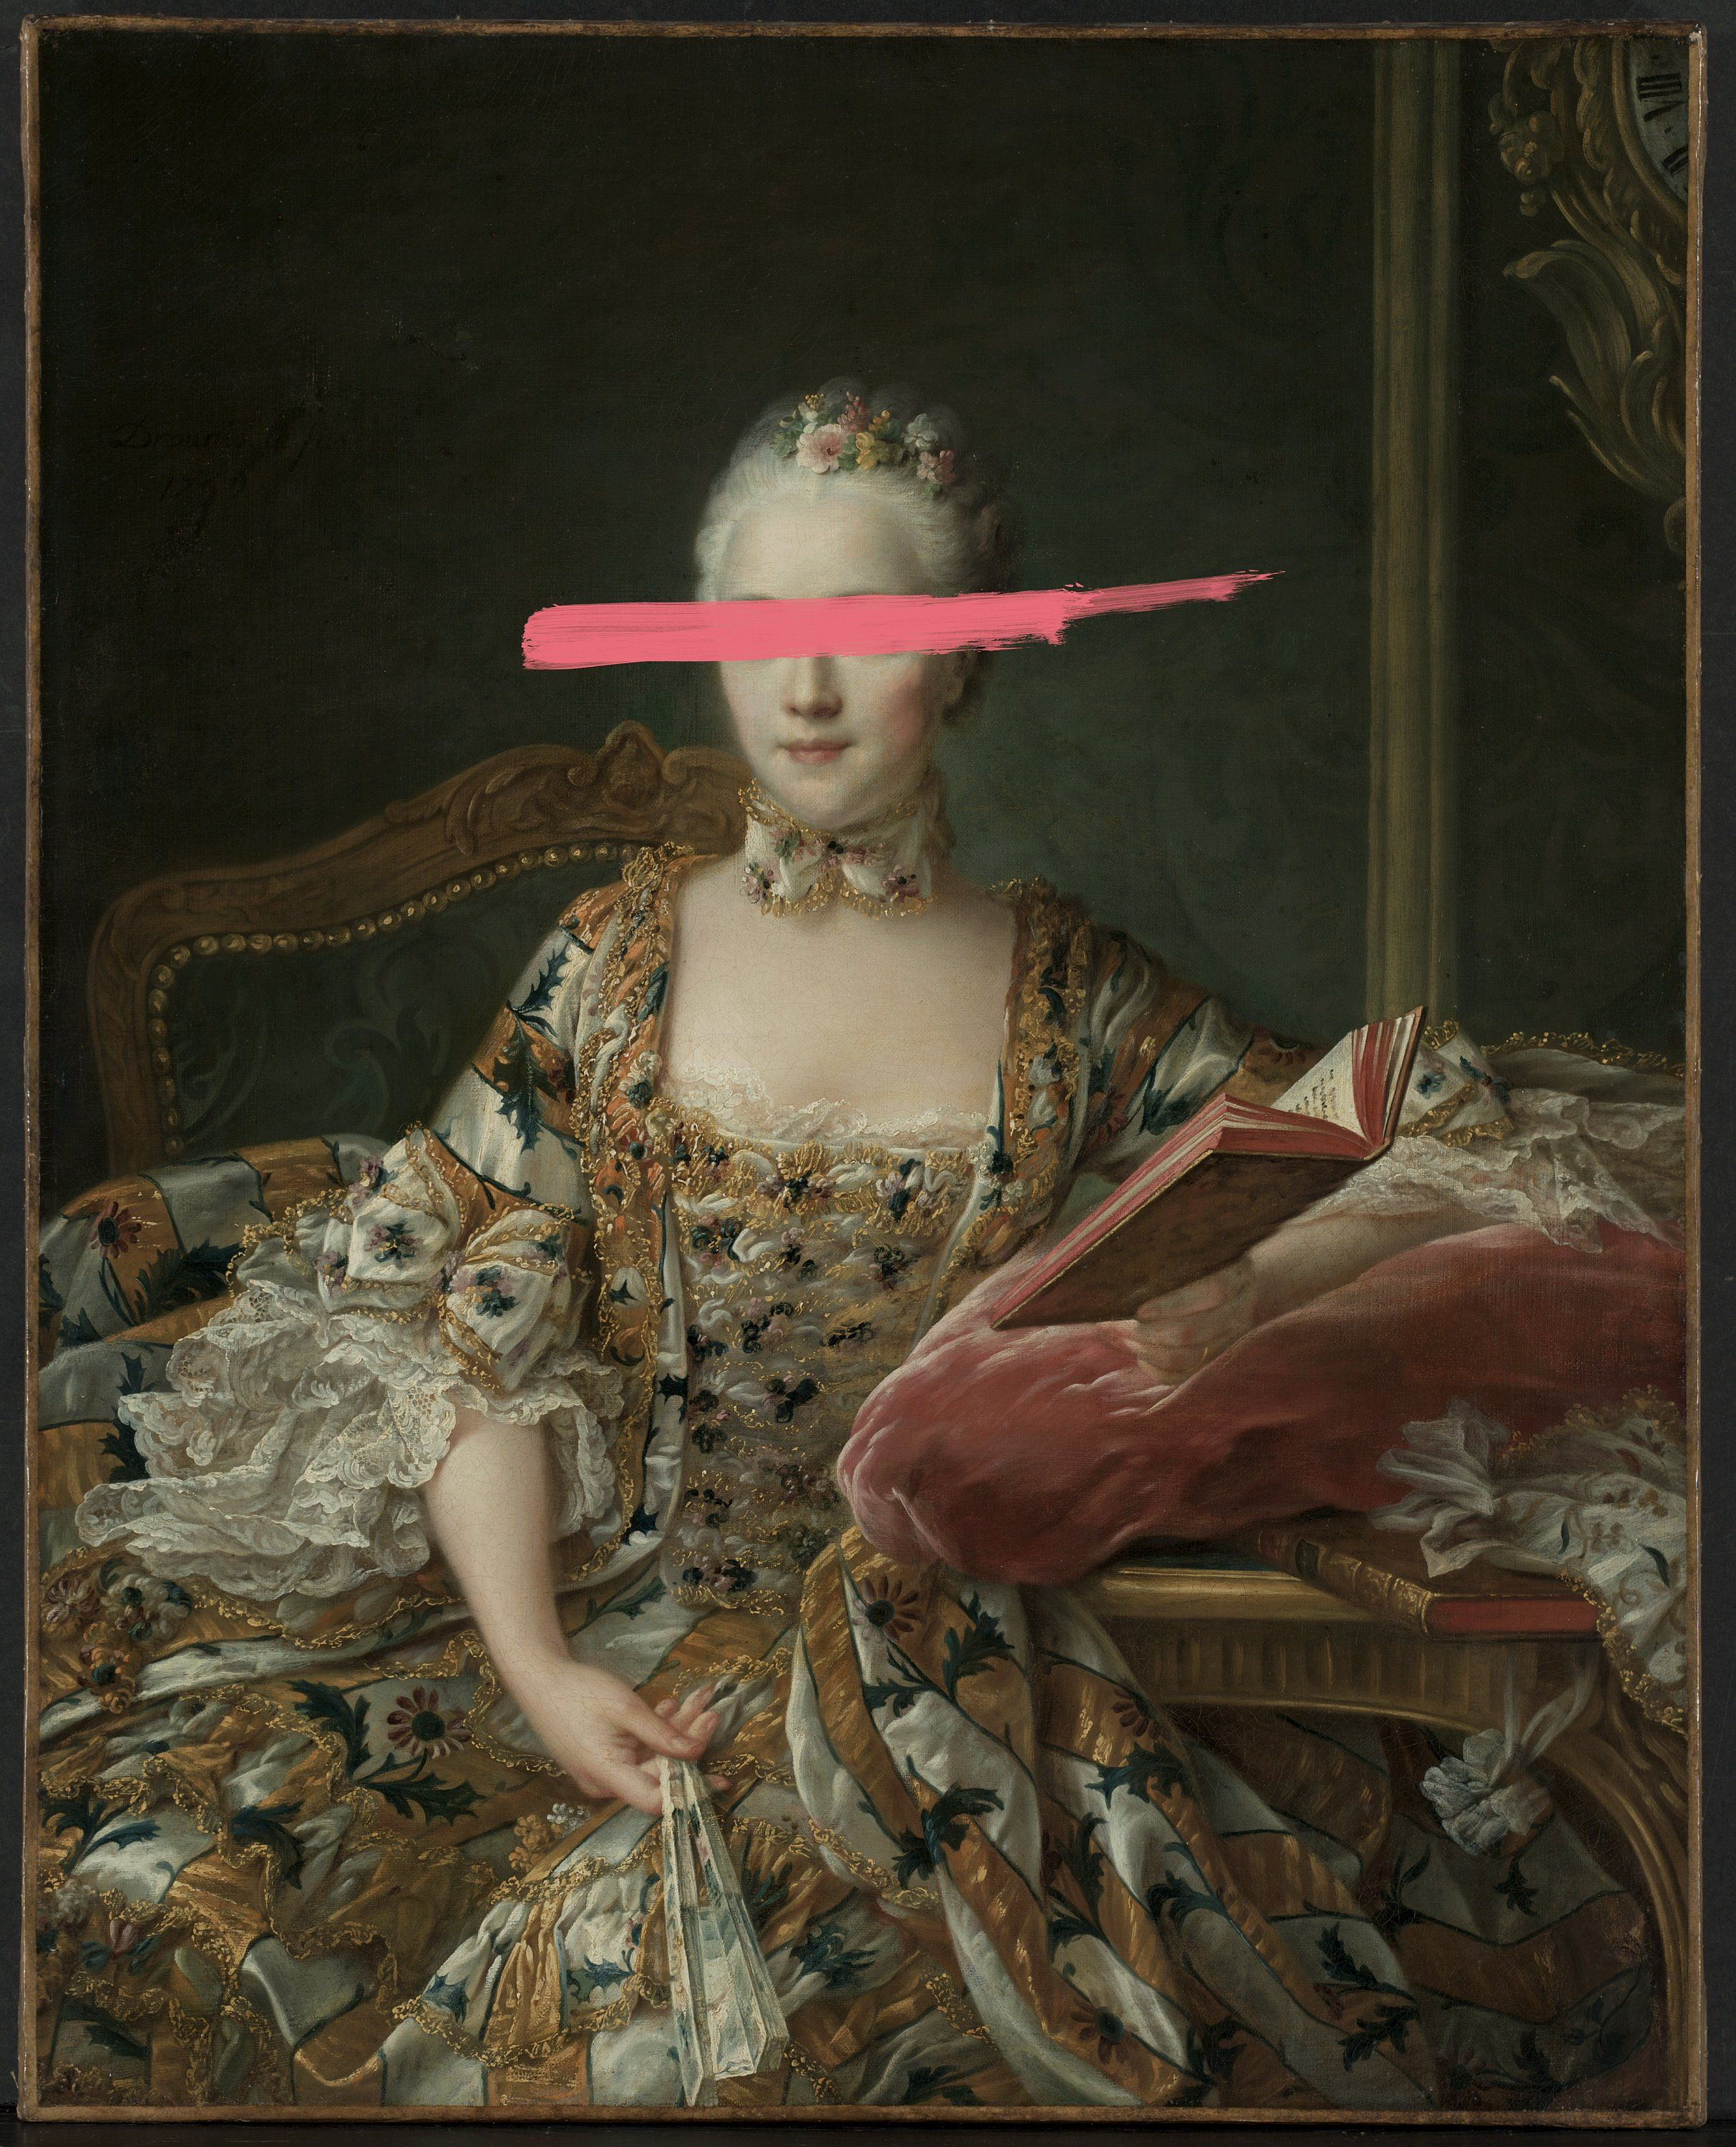 Edgy Sophisticated Art Classic Portrait With Pink Line Over Eyes Classic Portraits Sophisticated Art Classic Portrait Painting